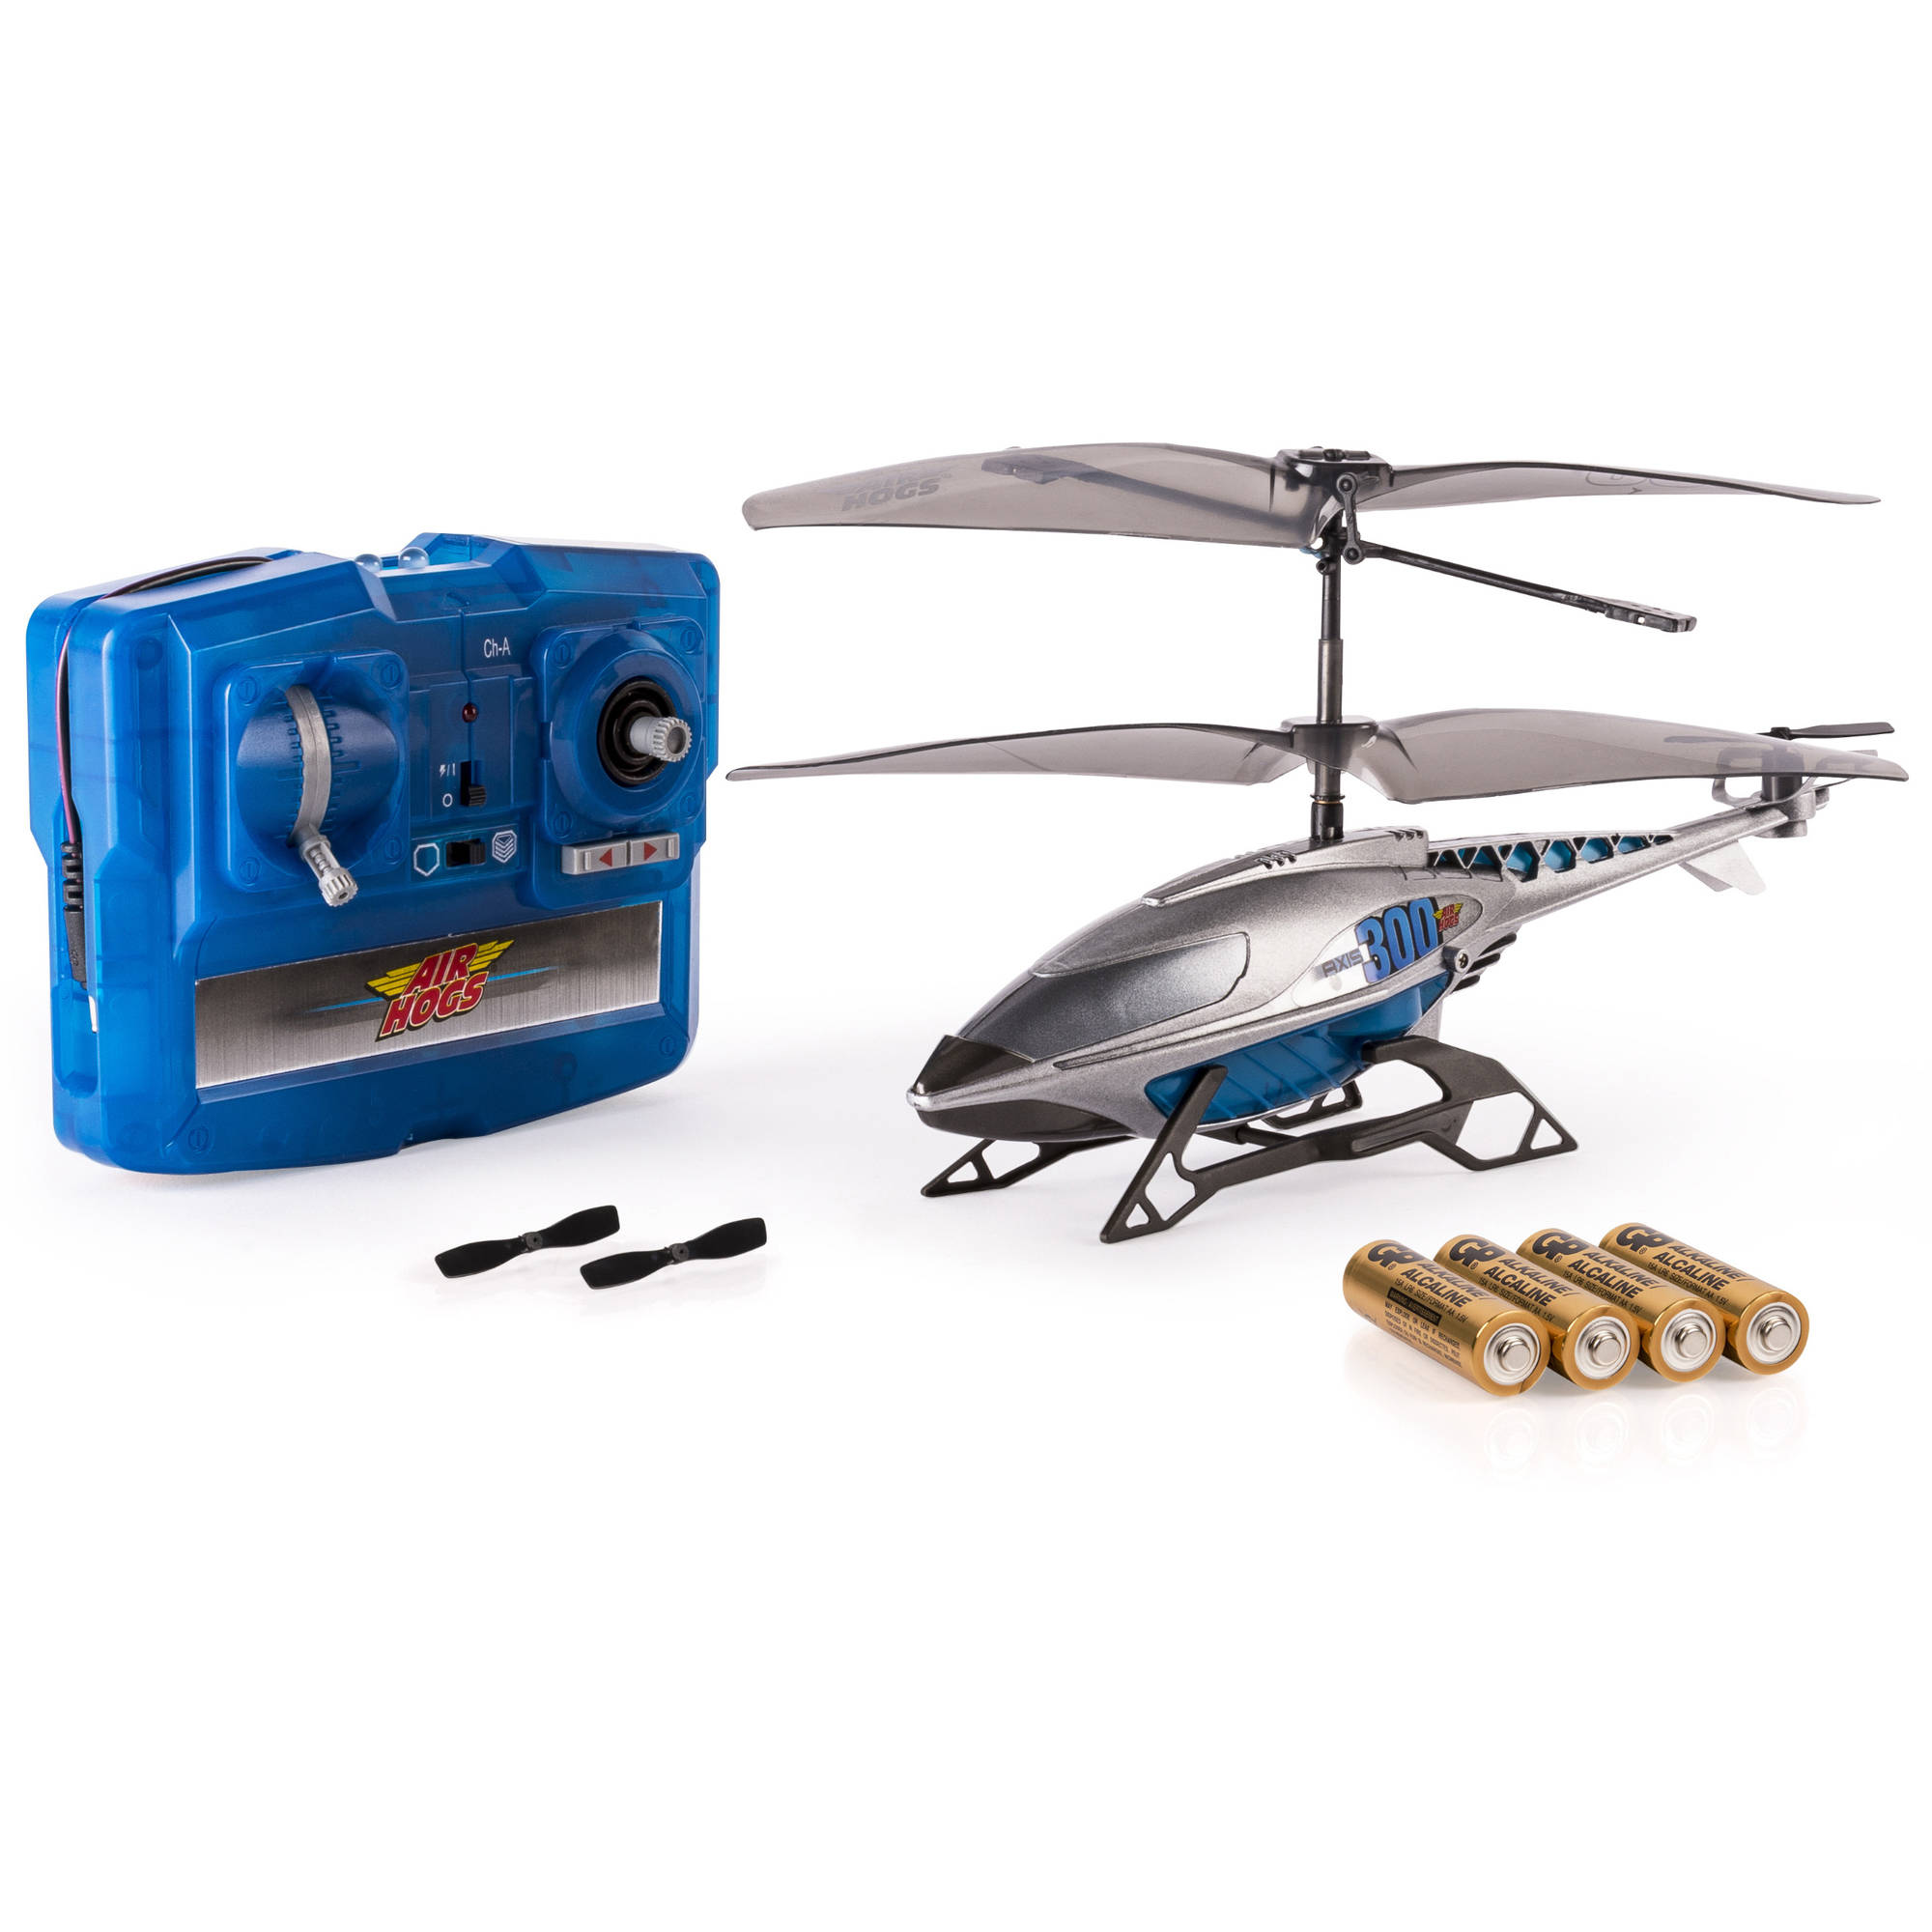 Air Hogs, Axis 300x RC Helicopter With Batteries Silver & Blue by Spin Master Ltd